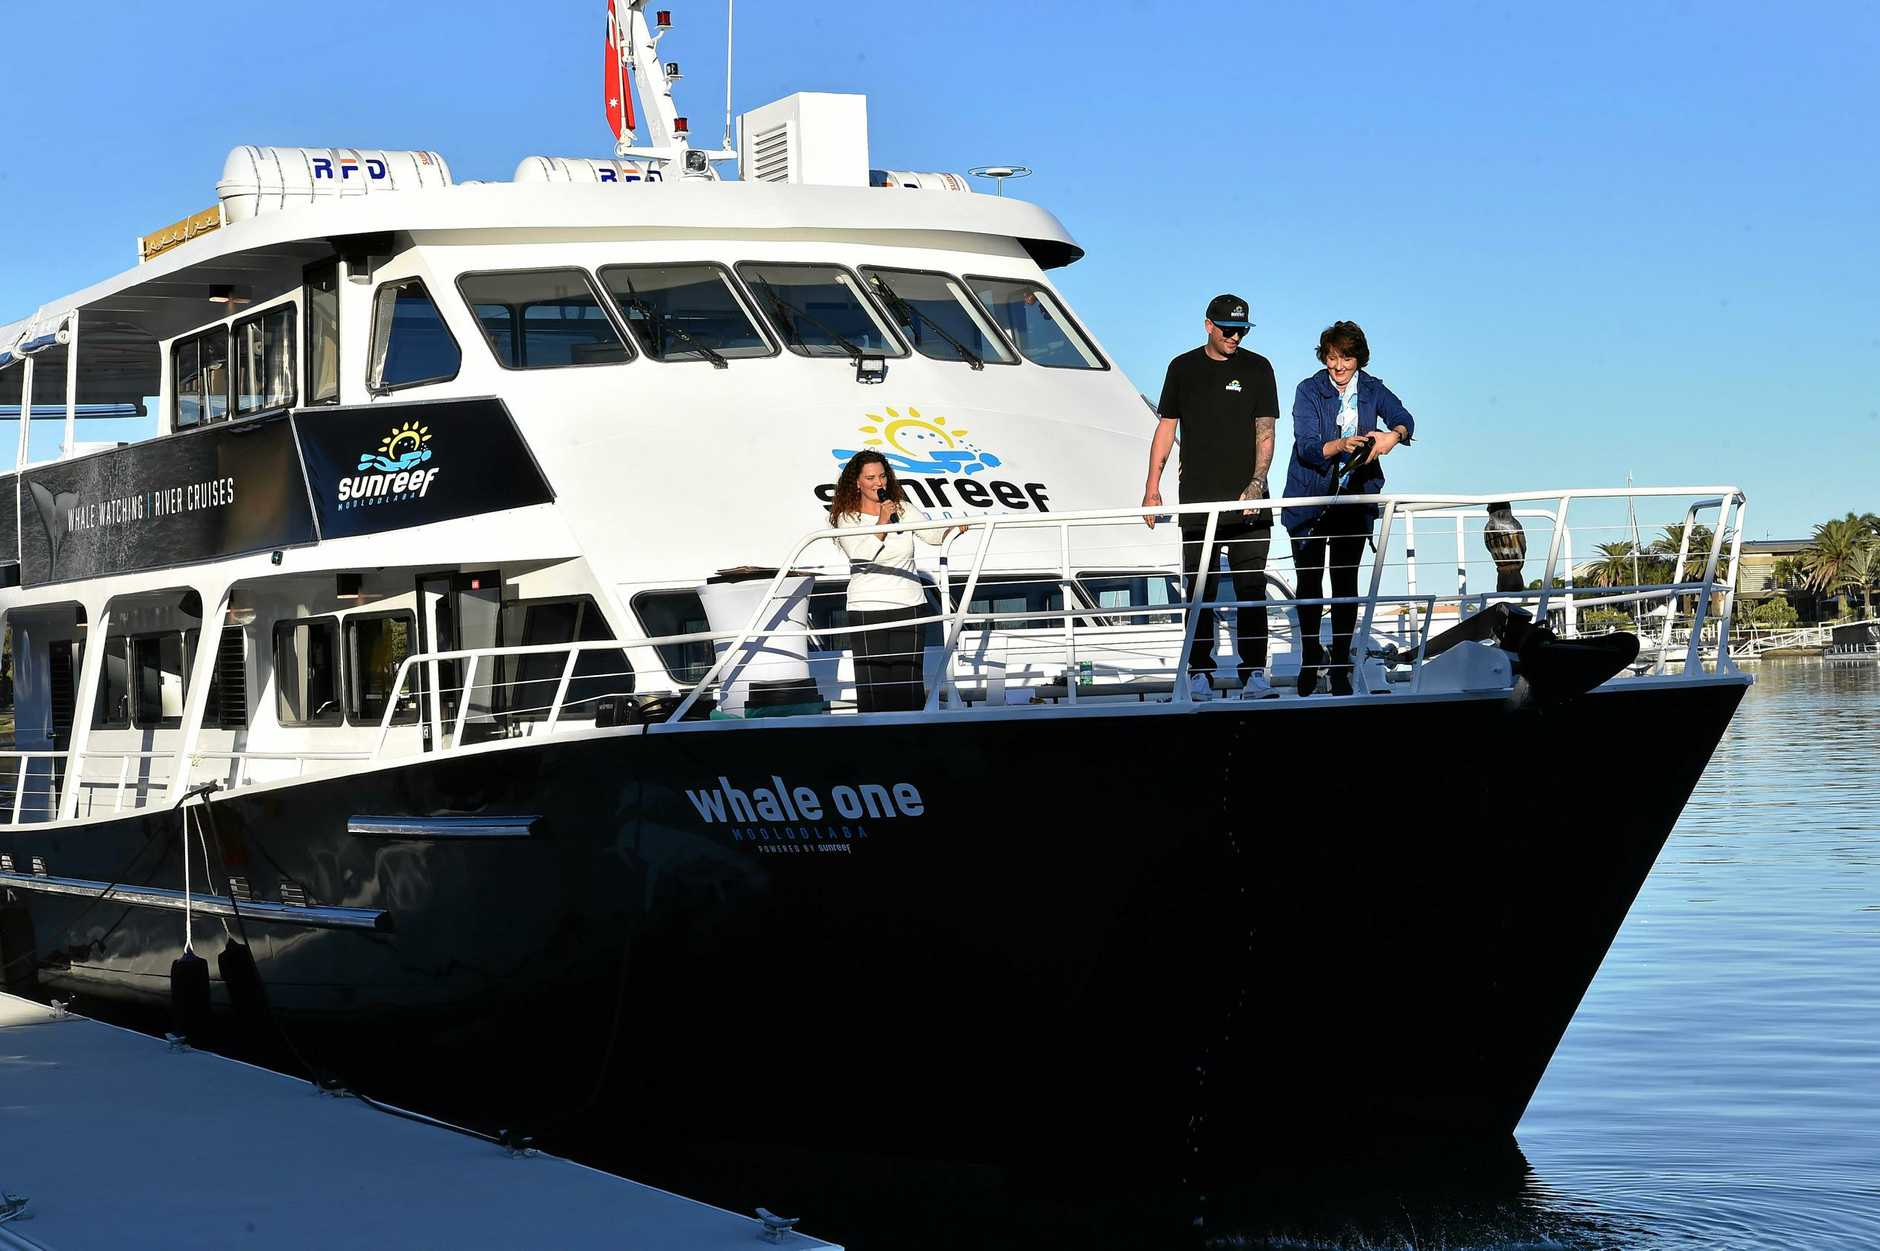 Launch of the Sunshine Coast Whale watching season and christening of the new look Whale One.Fiona Simpson MP and owner Dan Hart christen the Whale One.